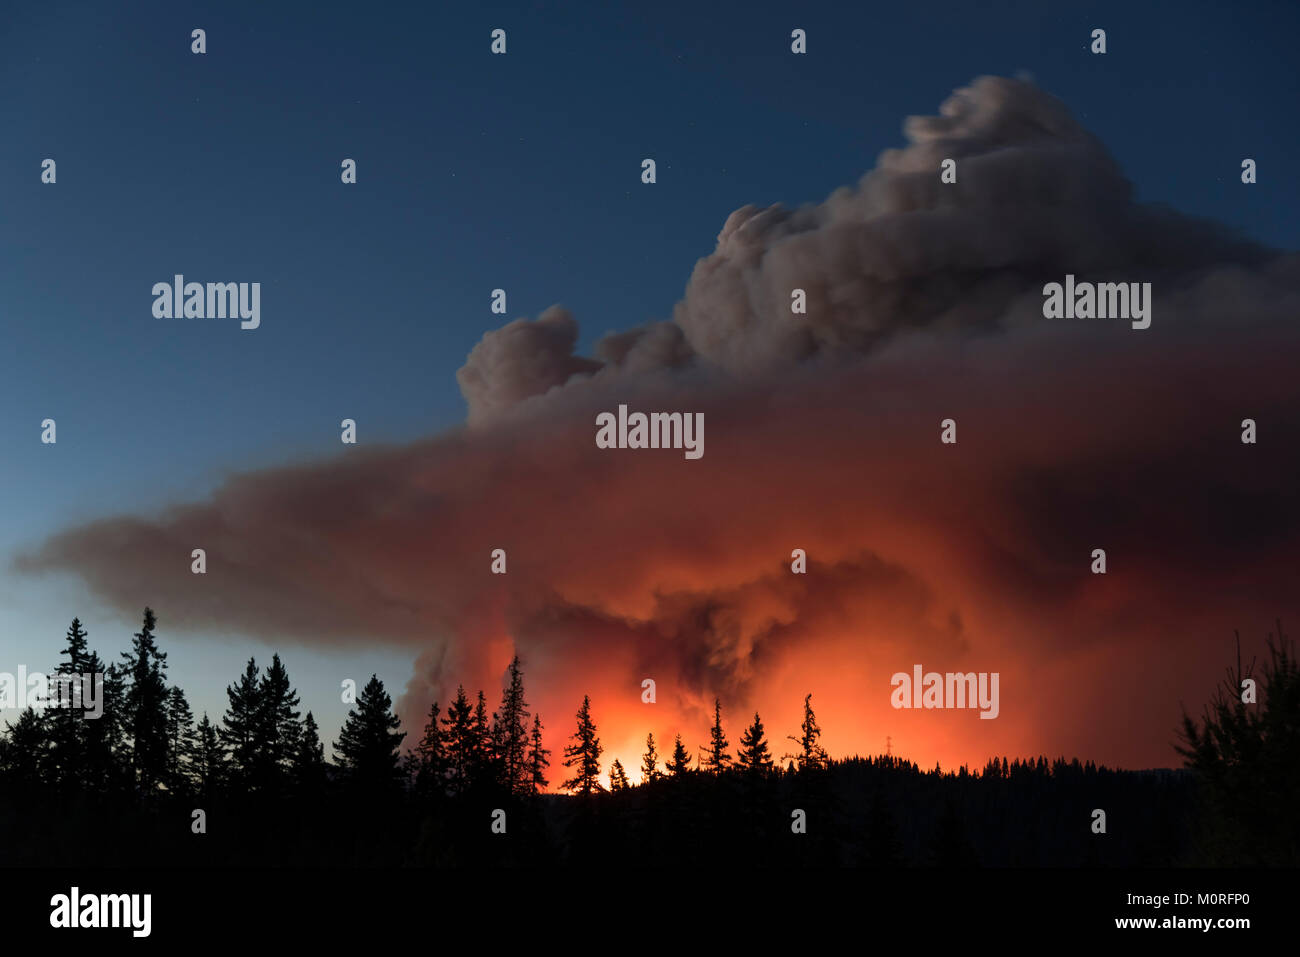 An image of the Jolly Mountain fire in the Cascades mountains near Cle Elum, Washington, USA on September 1, 2017. - Stock Image